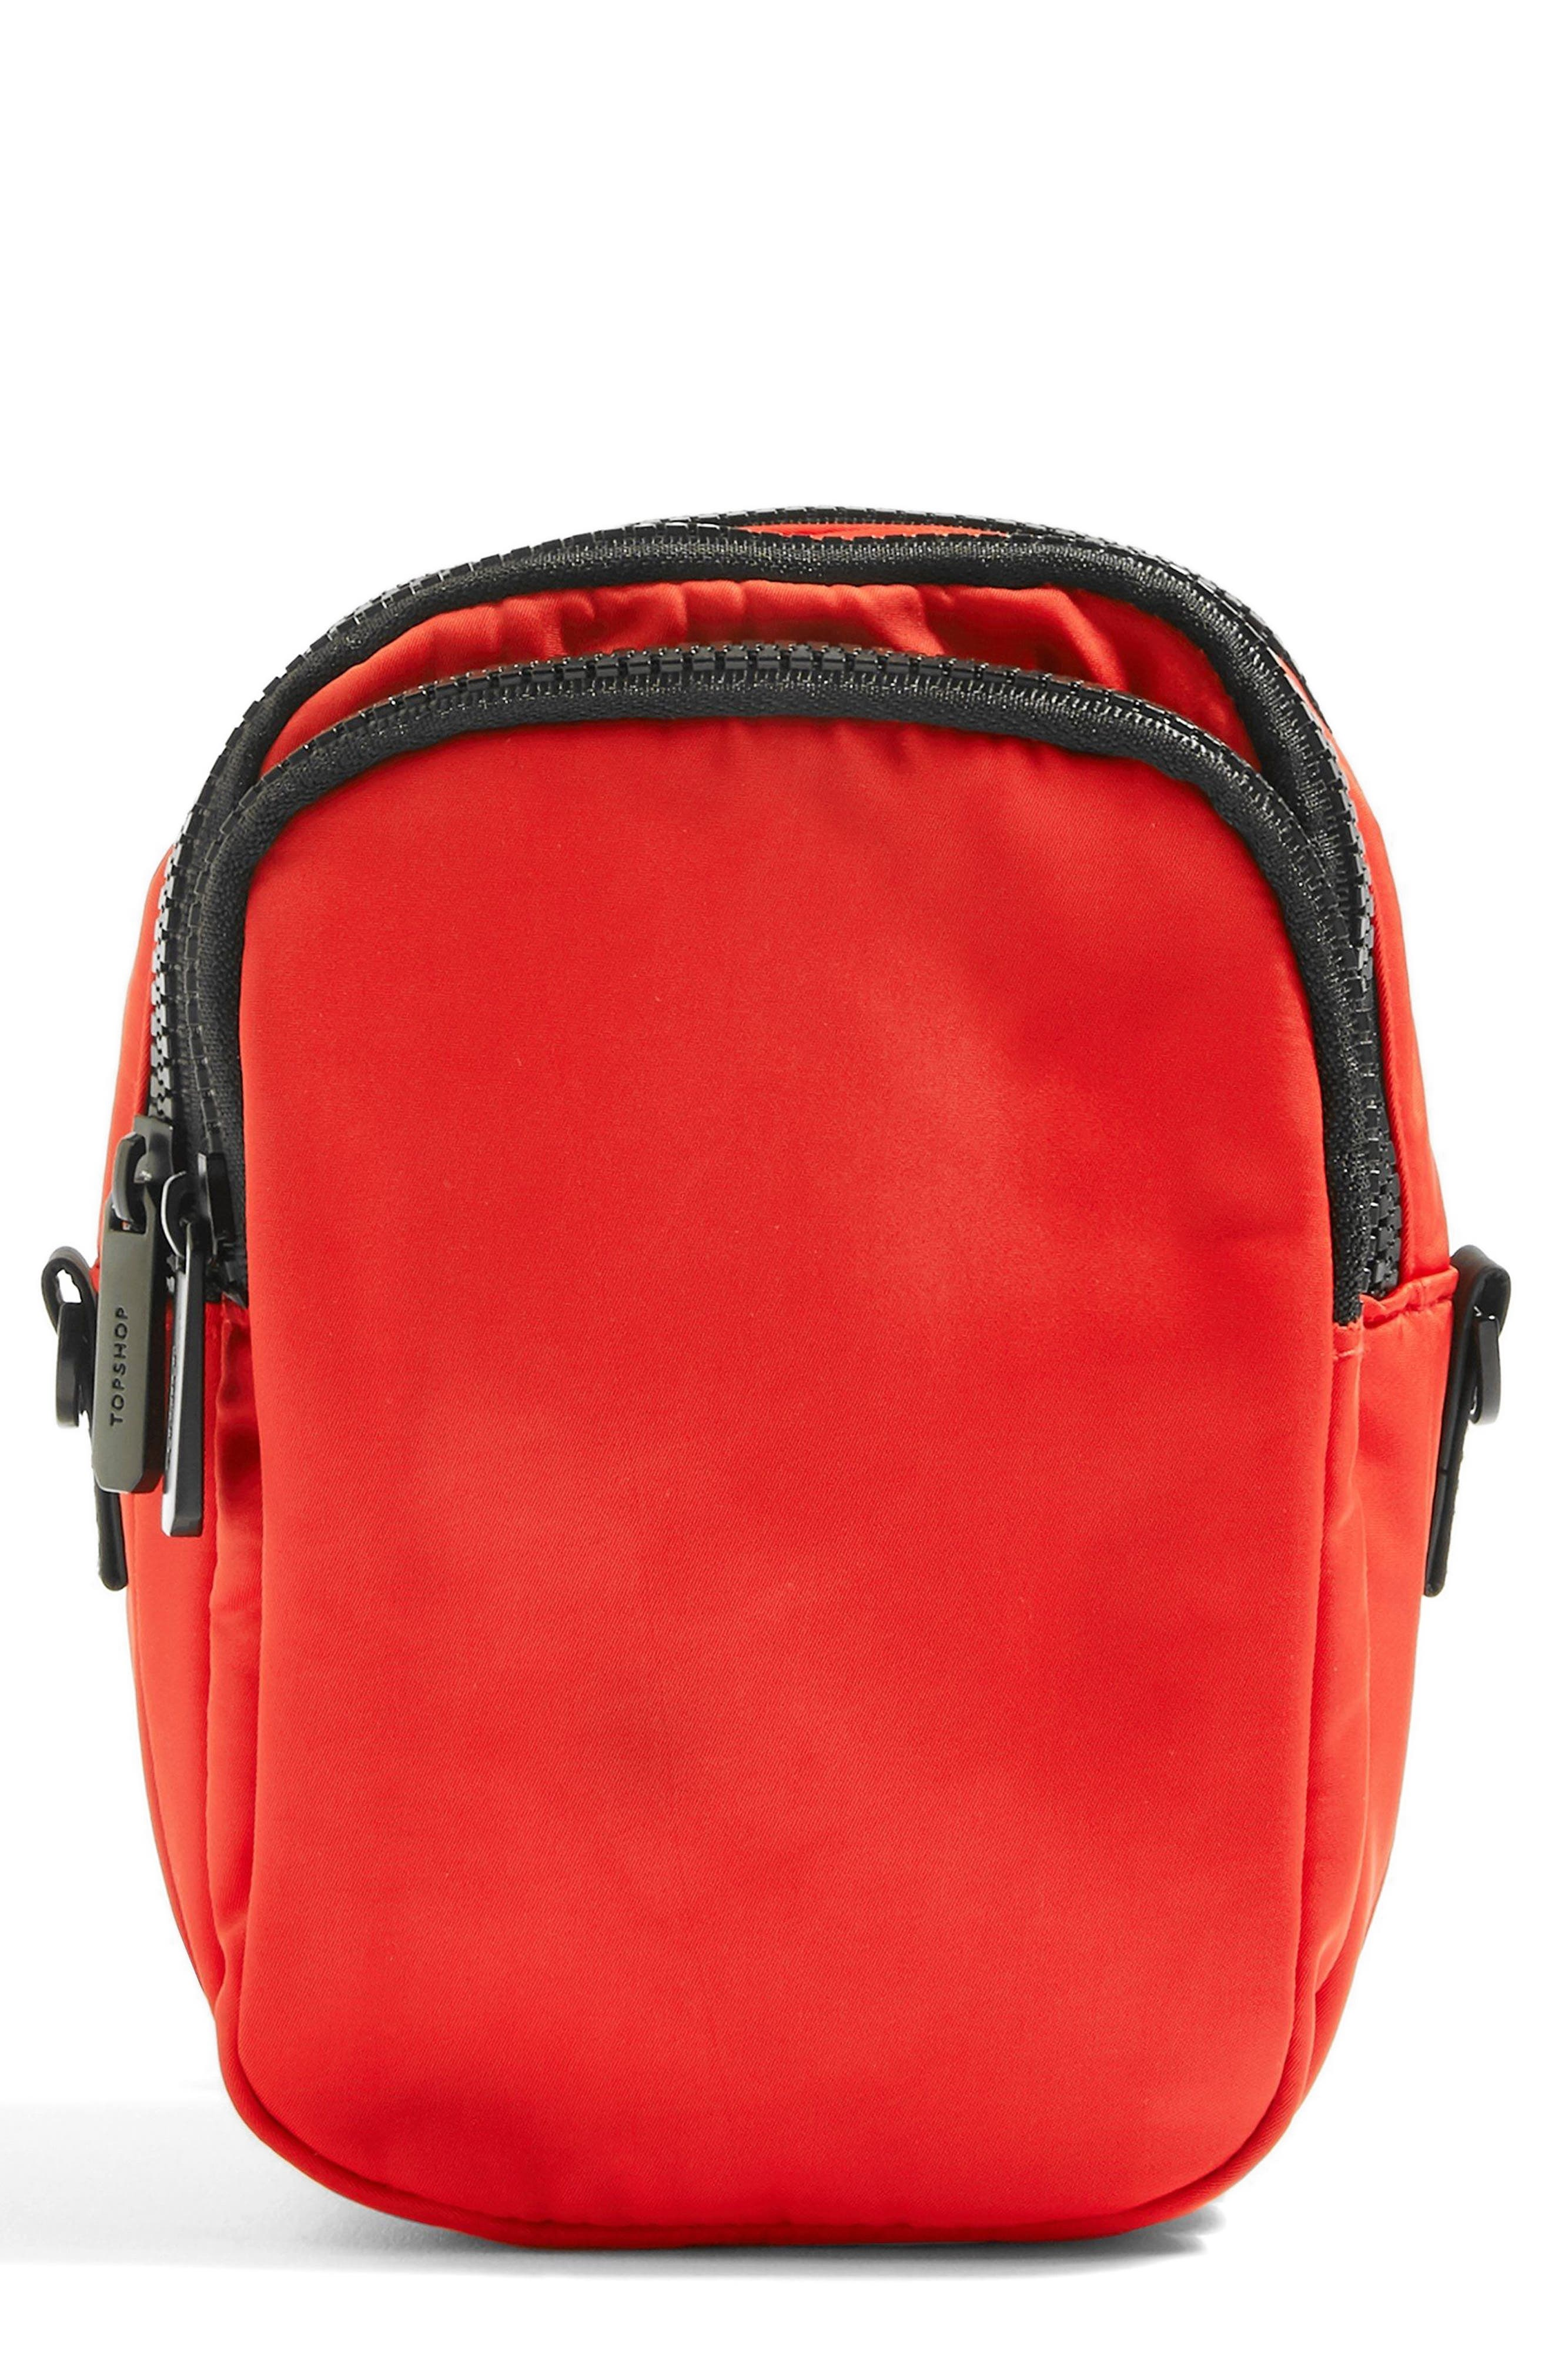 Storm Nylon Pouch,                         Main,                         color, Red